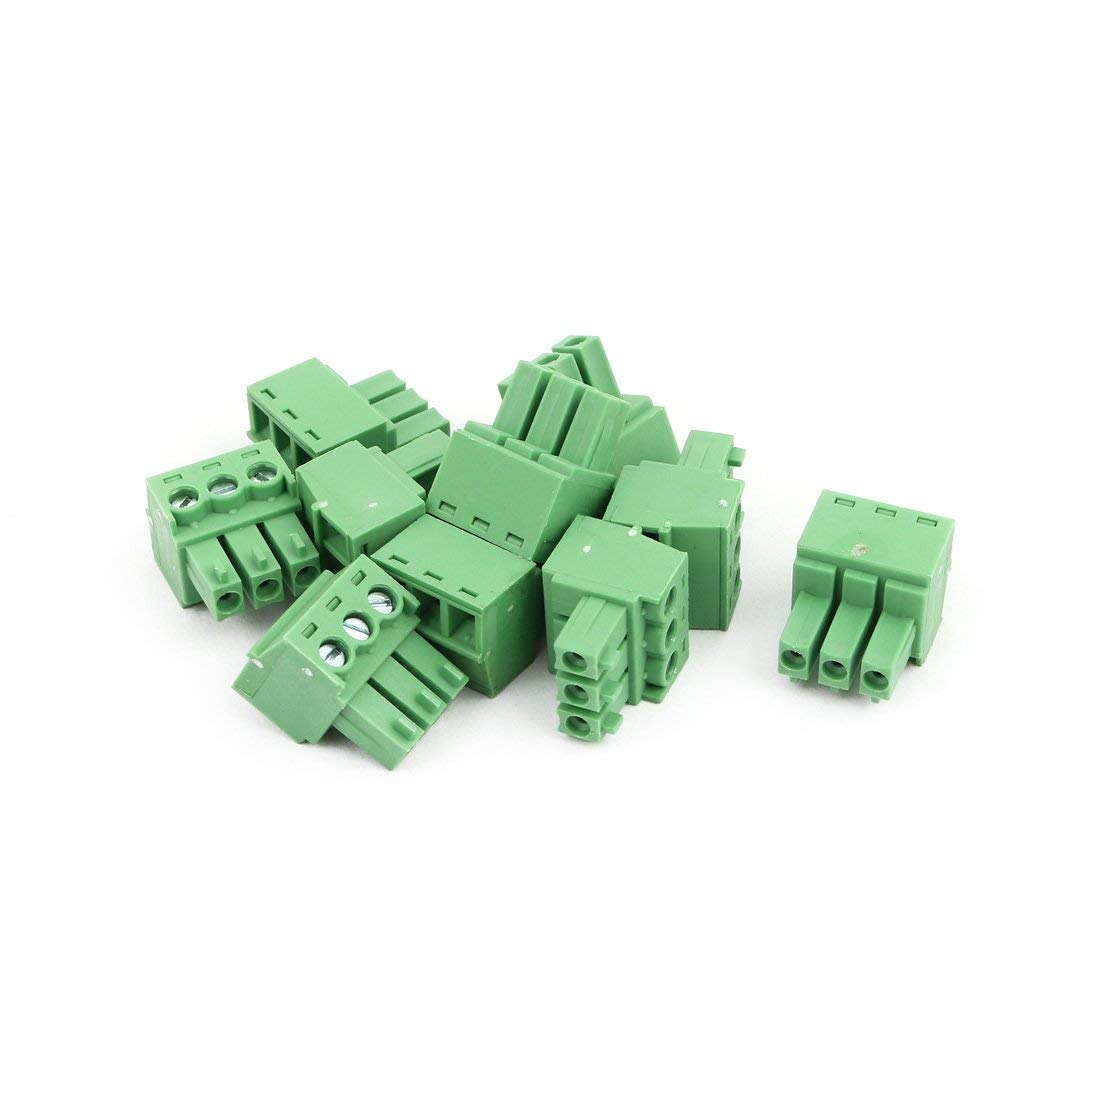 uxcell 10Pcs AC300V 8A 3.81mm Pitch 3P Terminals Block Wire Connection for PCB Mounting